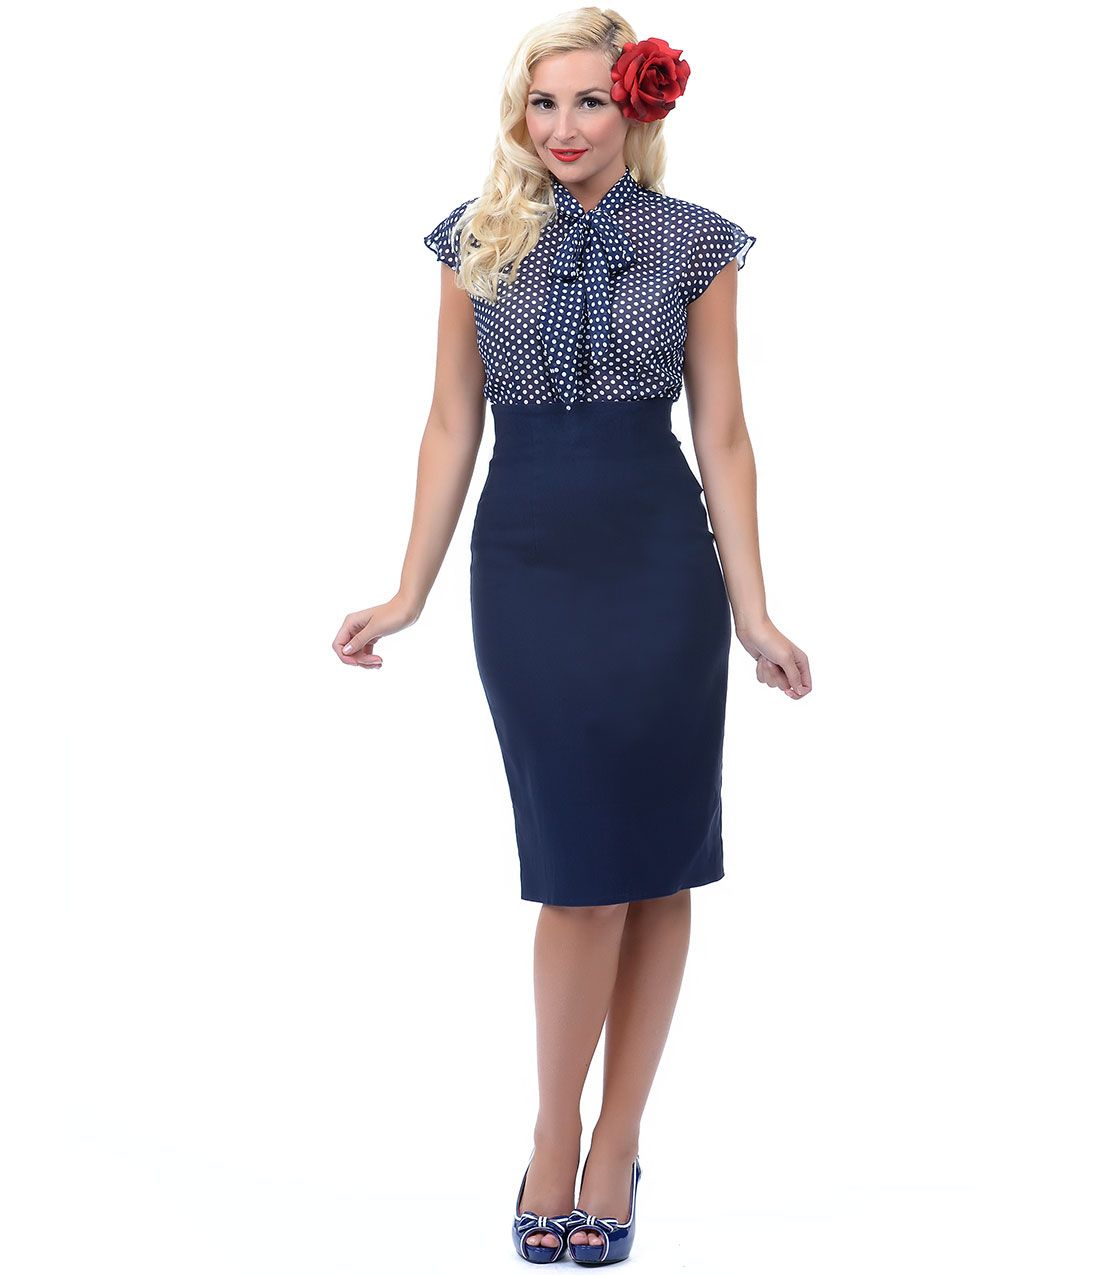 168 Stop Staring! 1930s Style Navy & Ivory Railene Dress | Retro ...